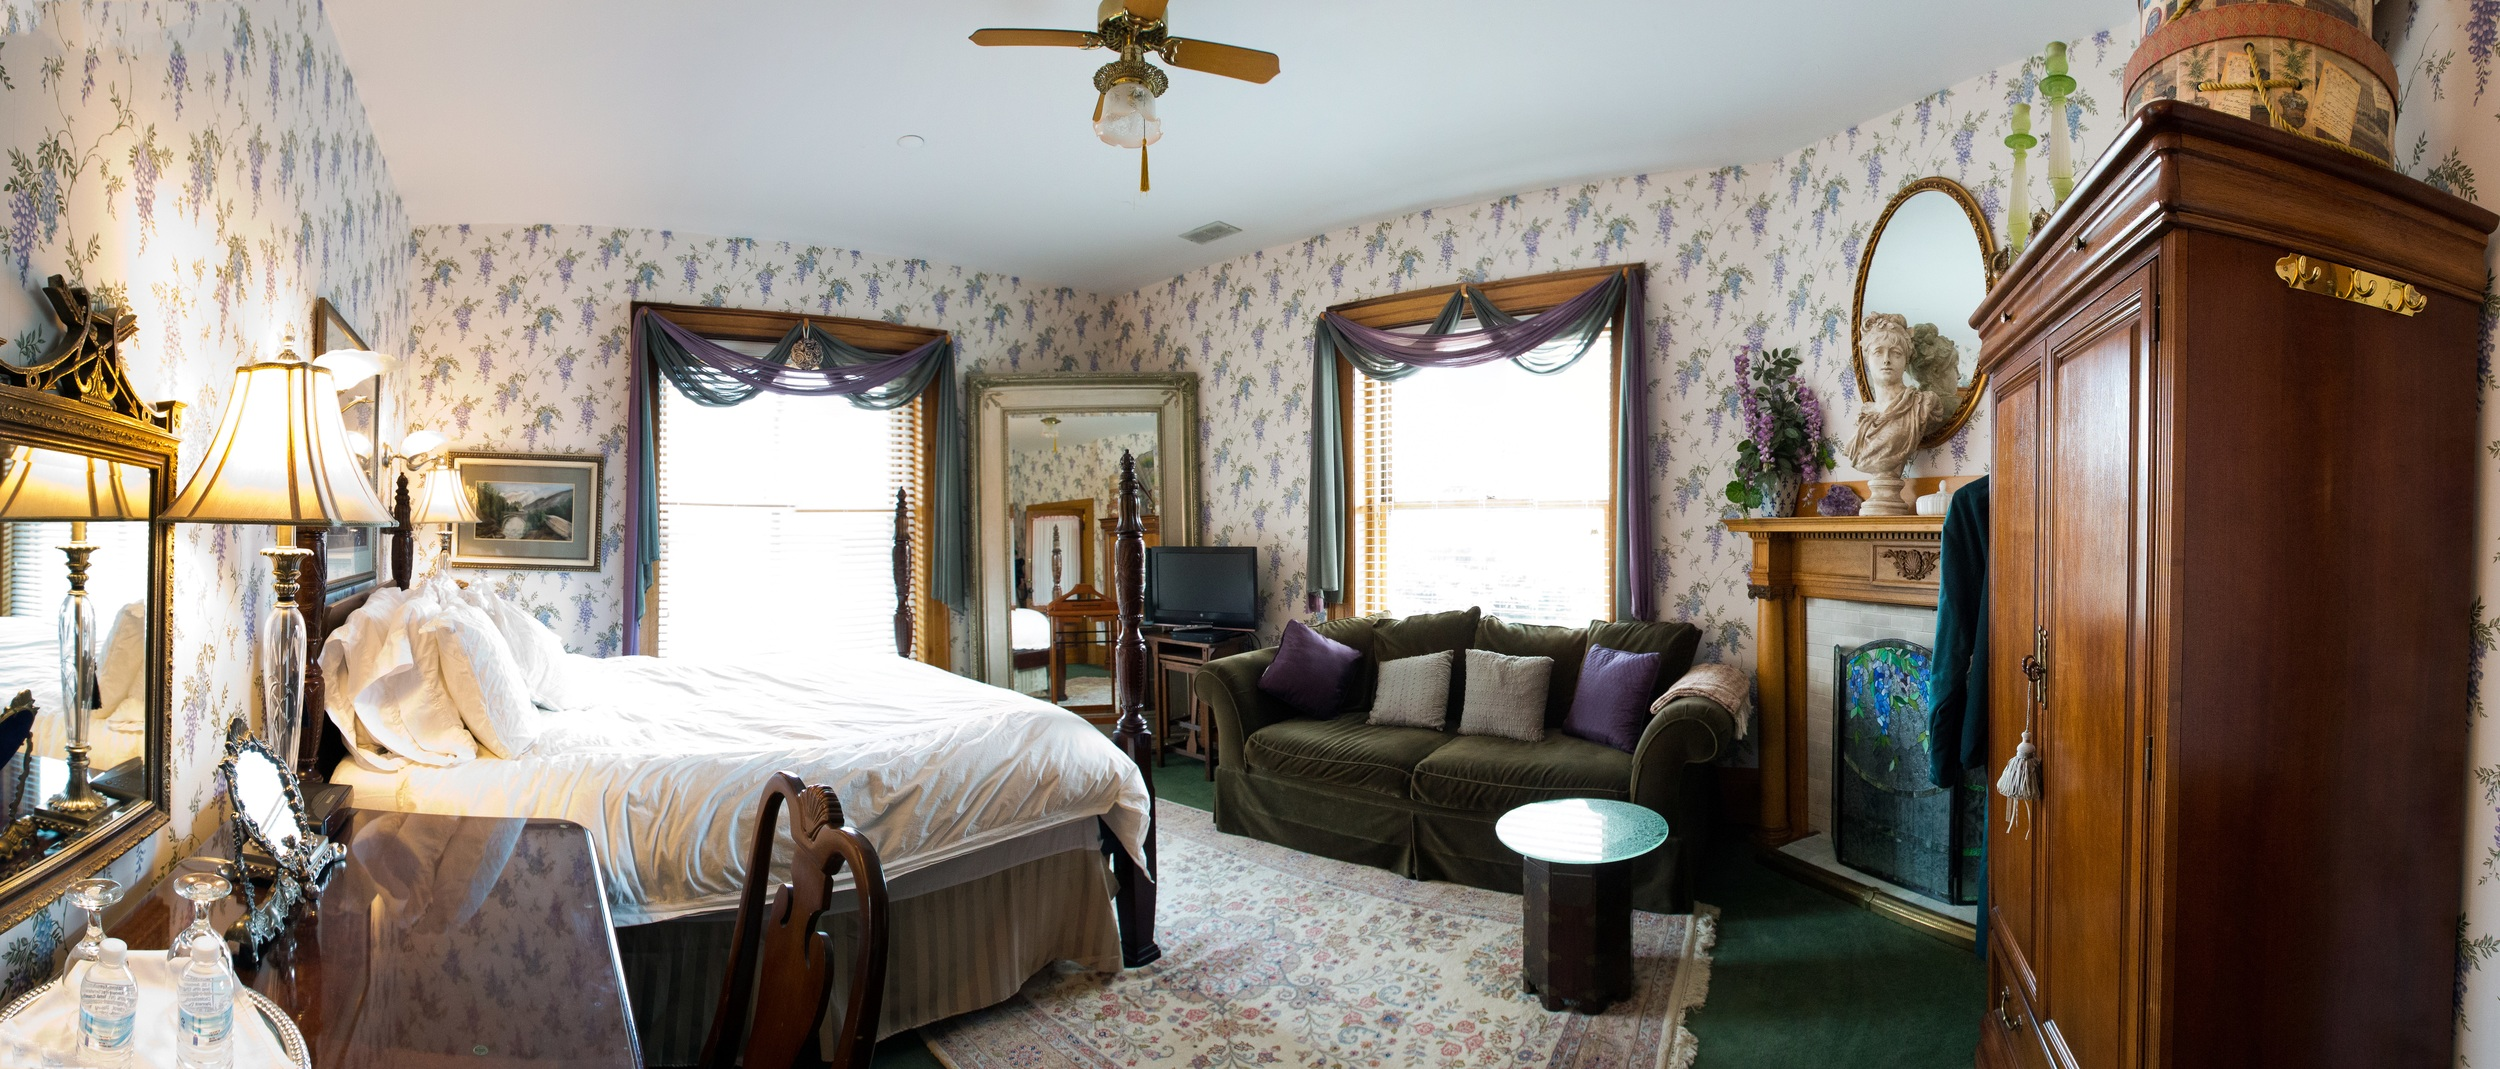 Room 2 - Single Queen Bed - $140 per night